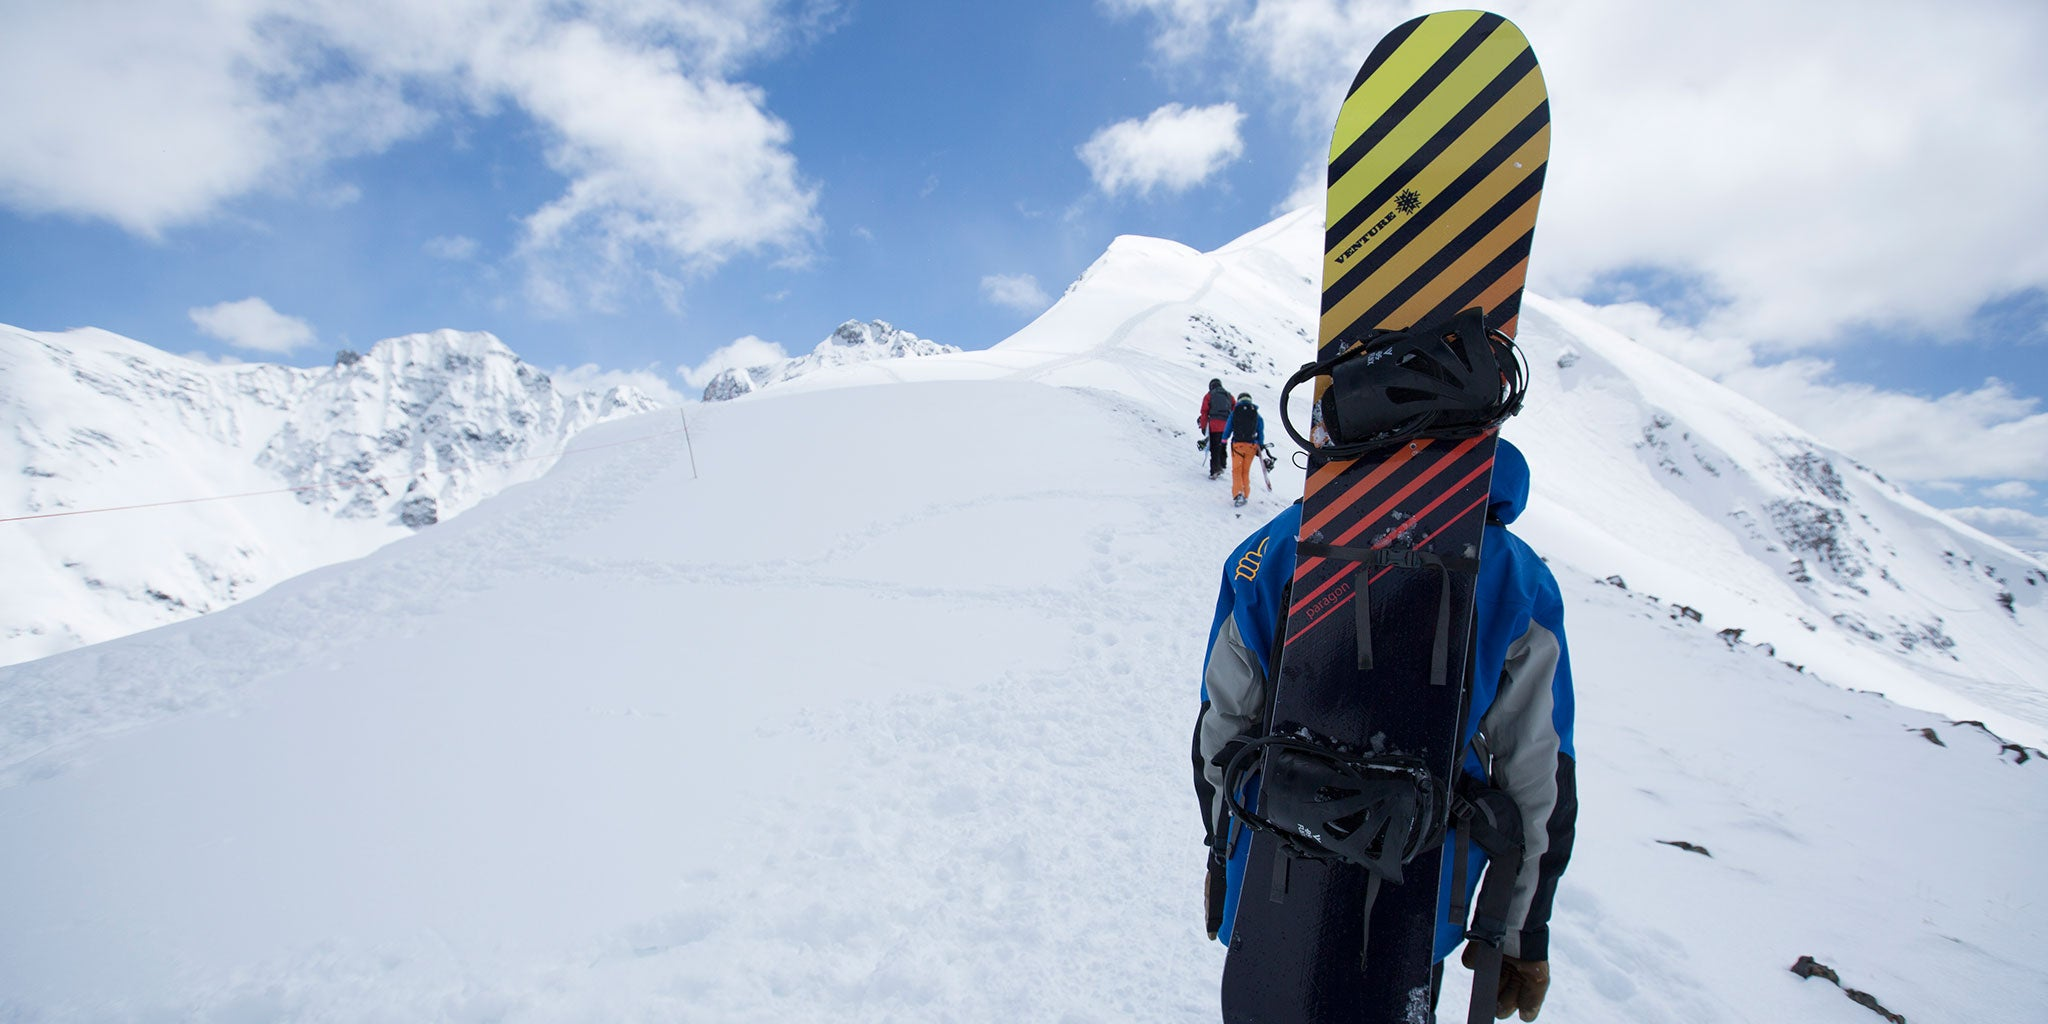 Venture's Paragon snowboard on Silverton Mountain.